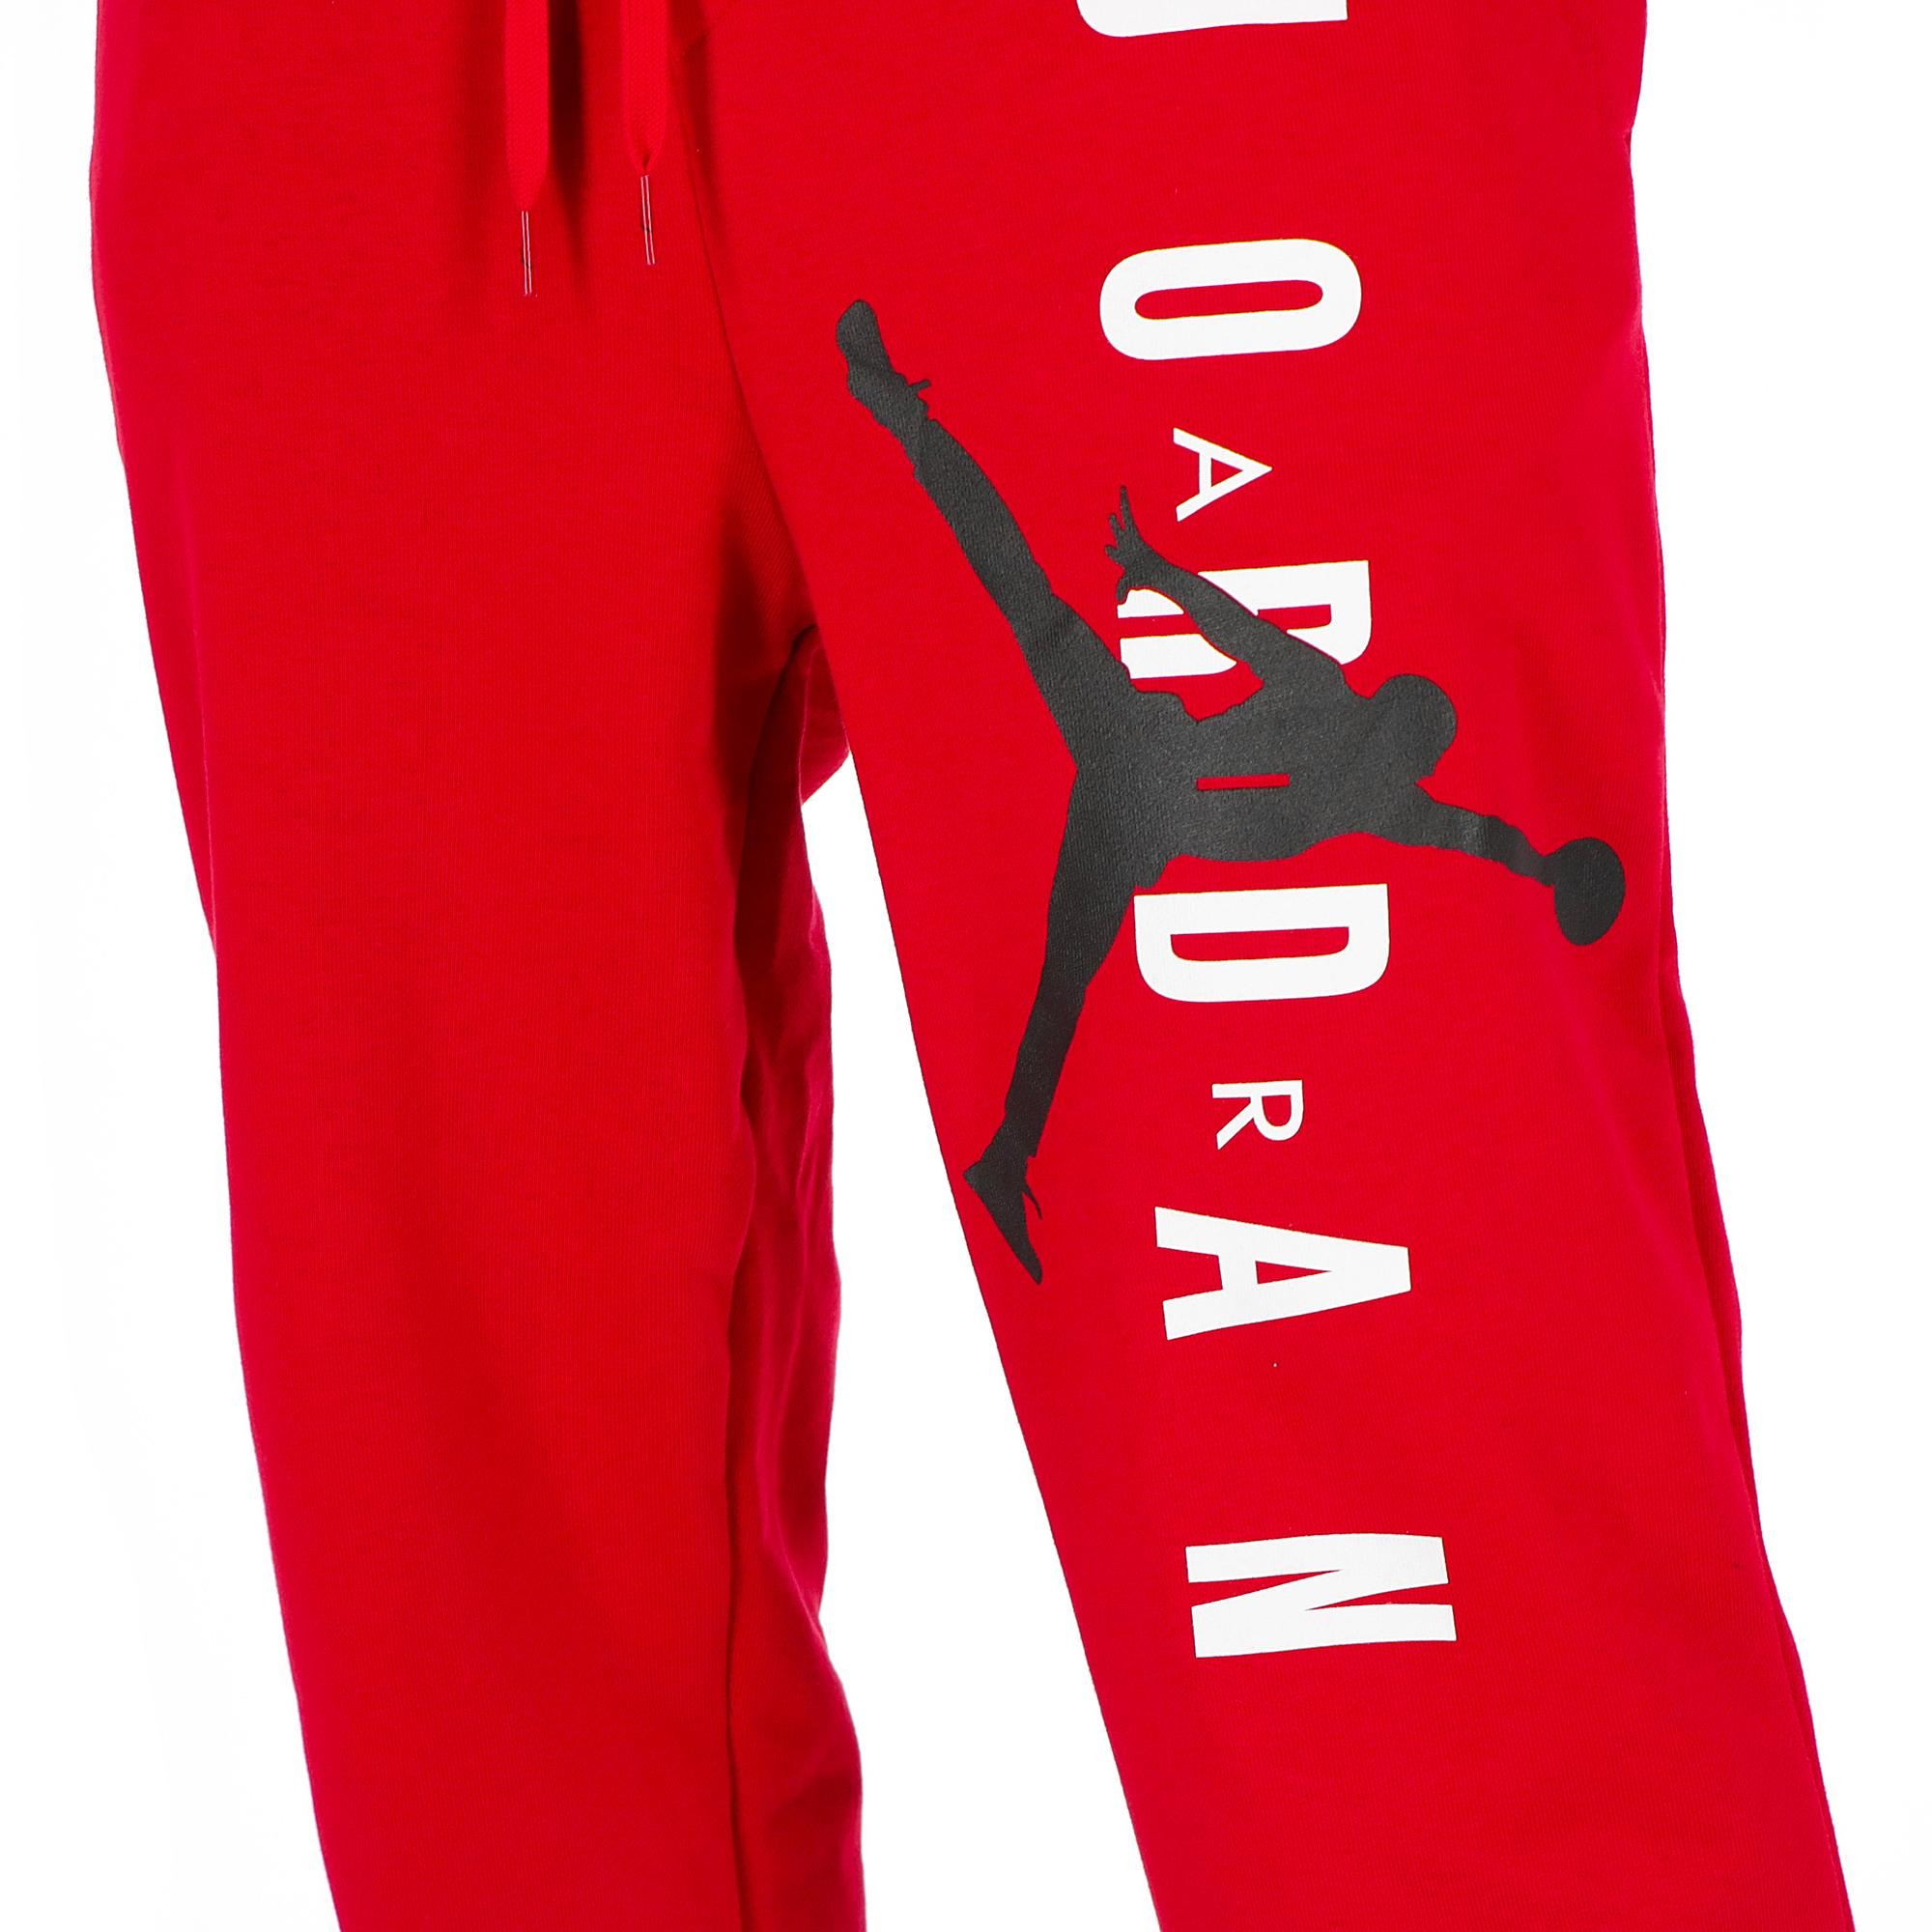 d6b43e25dfd Jordan Jumpman Air Lwt Flc Pant<br/> Black/gym Red | Treesse